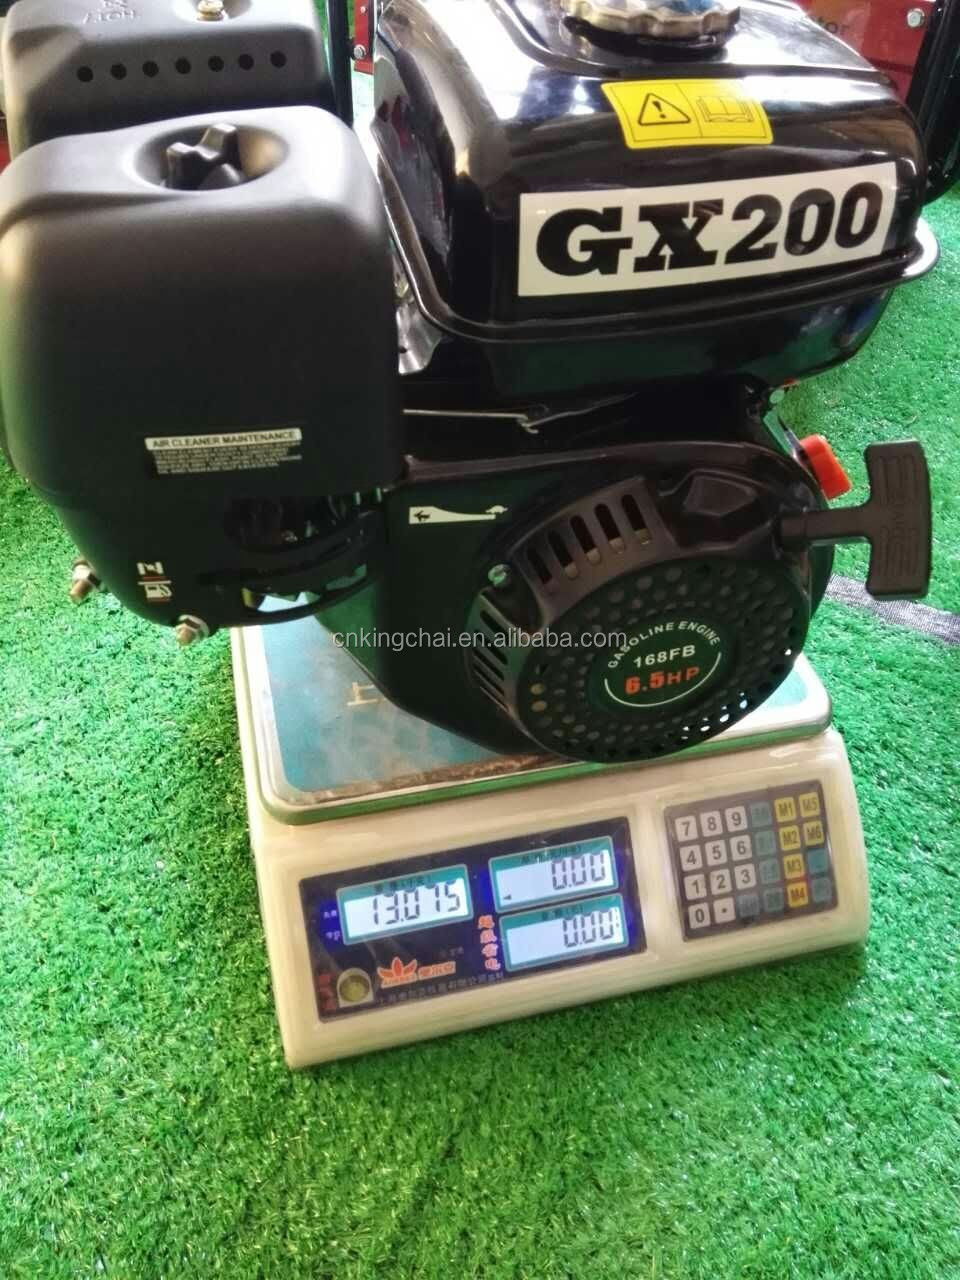 KINGCHAI JD design Gasoline Engine cheap price for sale! GX200 GX160 famous Pakistan market